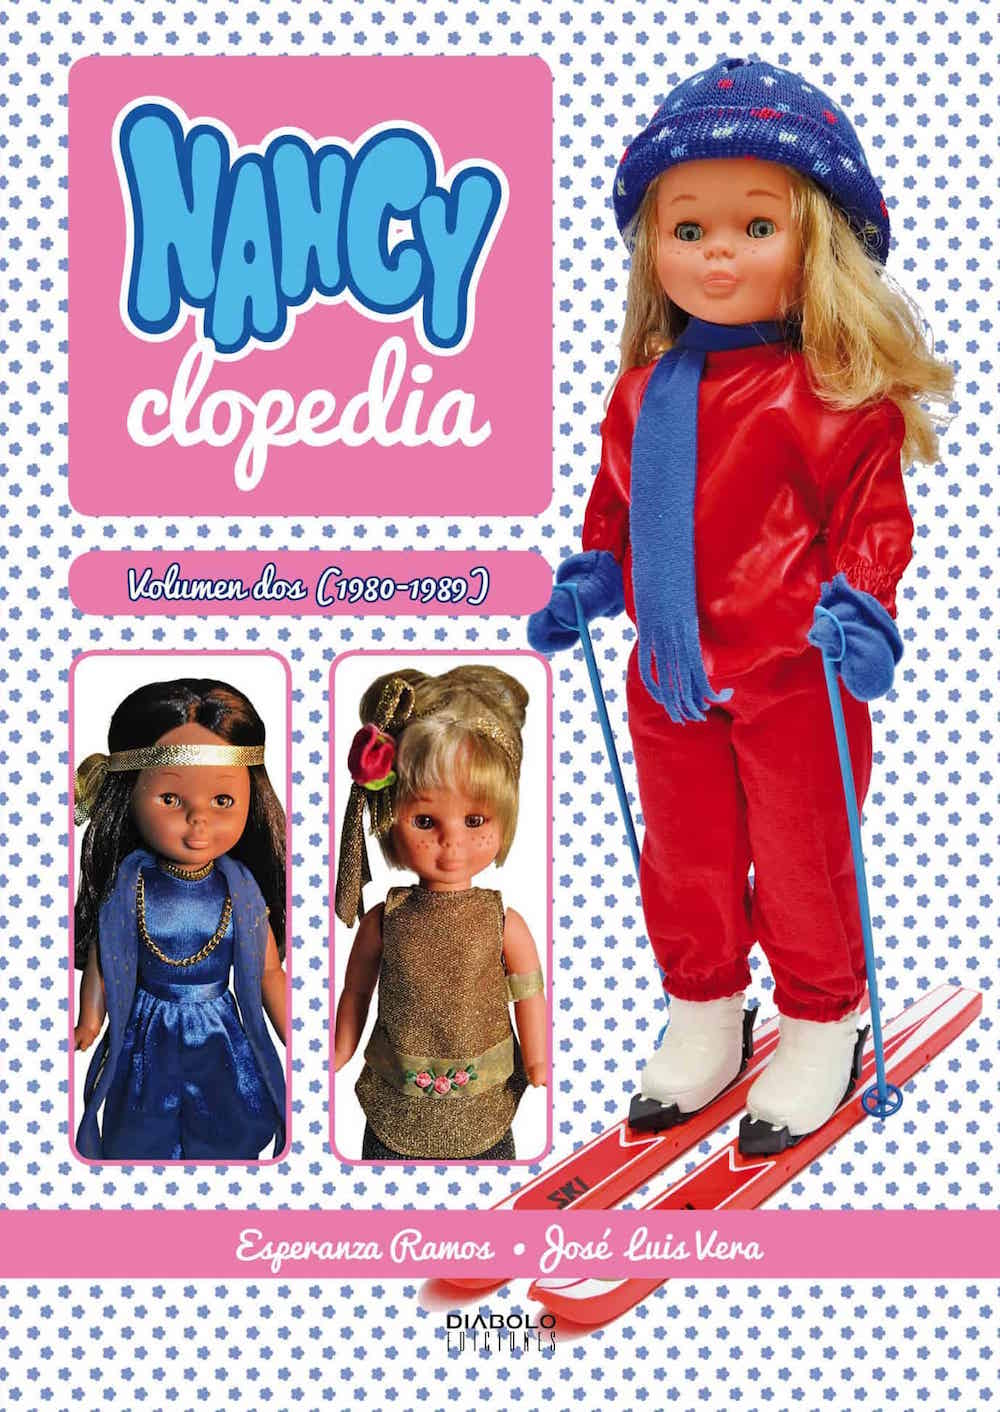 NANCYCLOPEDIA VOL. 02 (1980-1989)